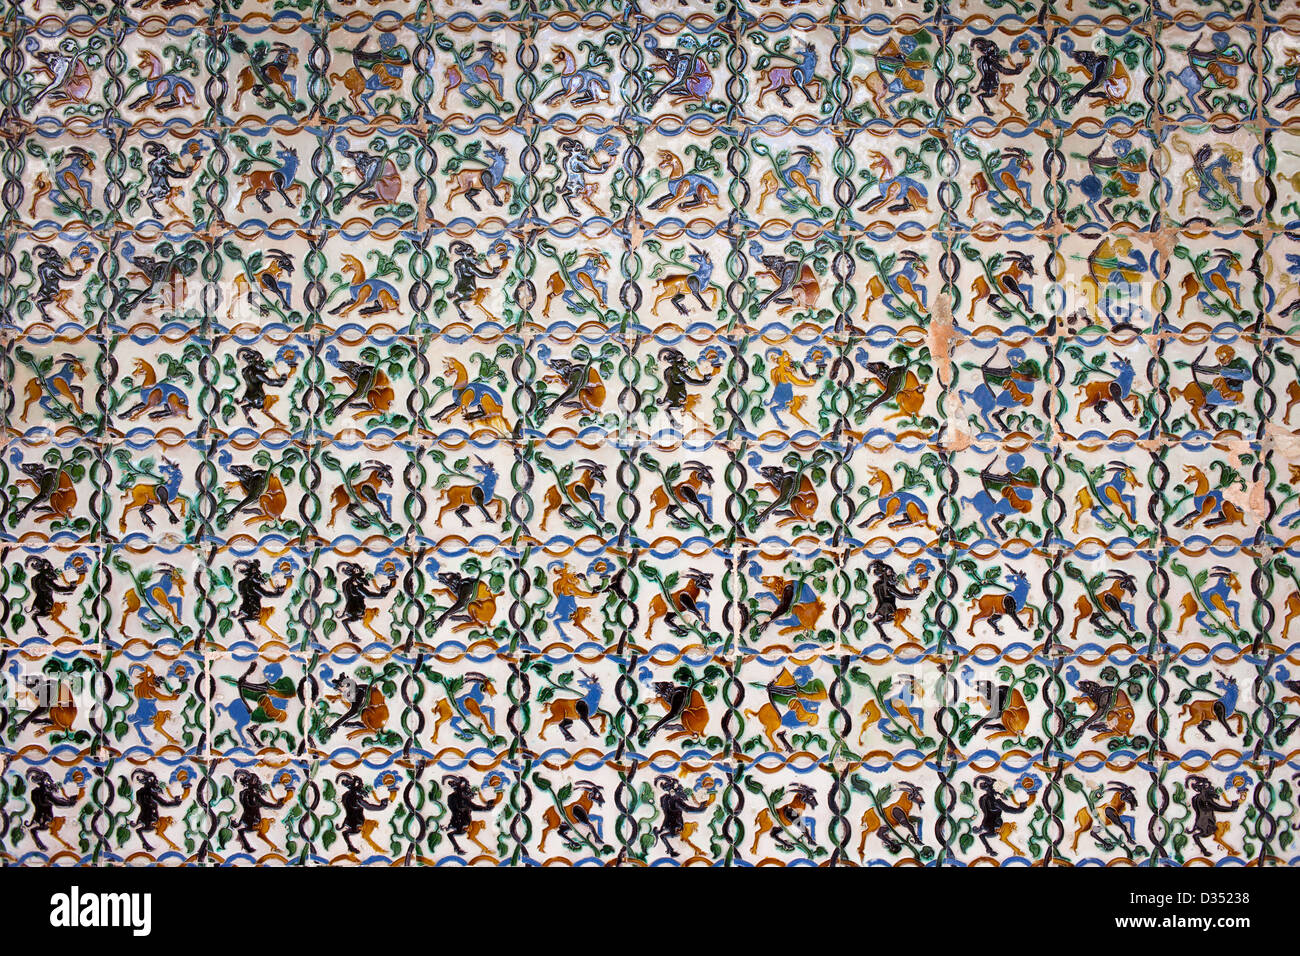 Historic tiled wall with satyrs, centaurs, goats and other mythical creatures, Real Alcazar, Seville, Spain, Andalusia - Stock Image